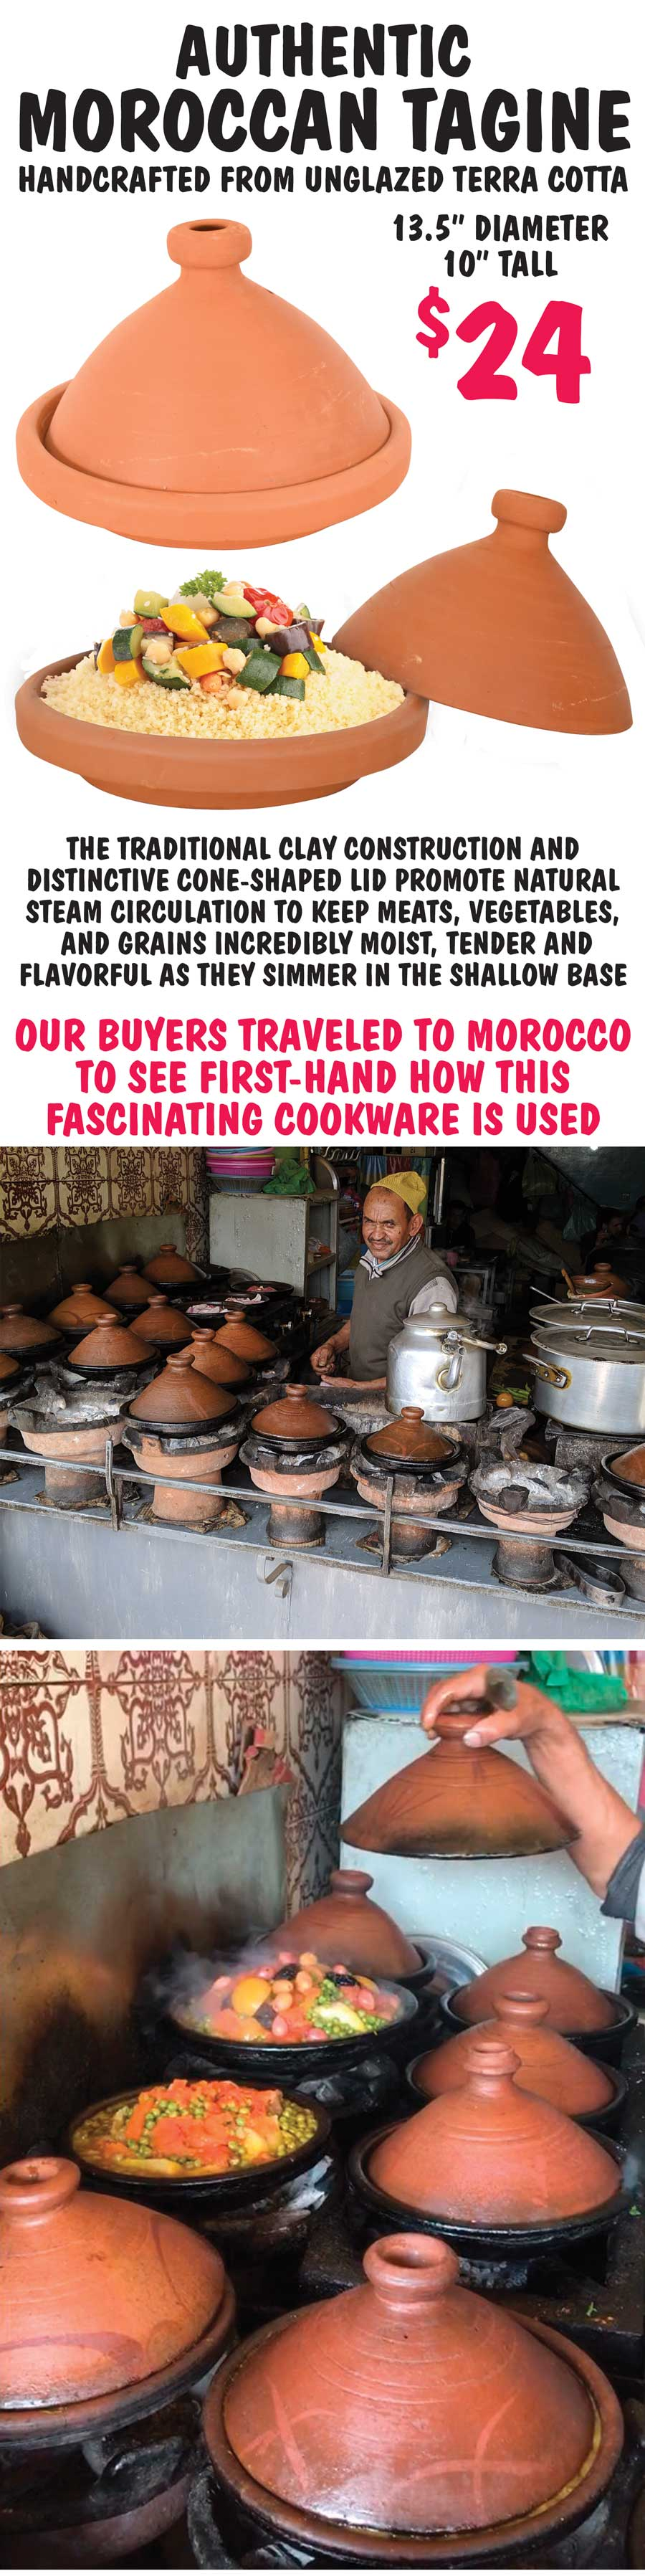 Authentic Moroccan Tagine $24 - bring the taste of Moroccan cooking to your kitchen! Click here to read our travel blog and learn how our buyers discovered tagines.